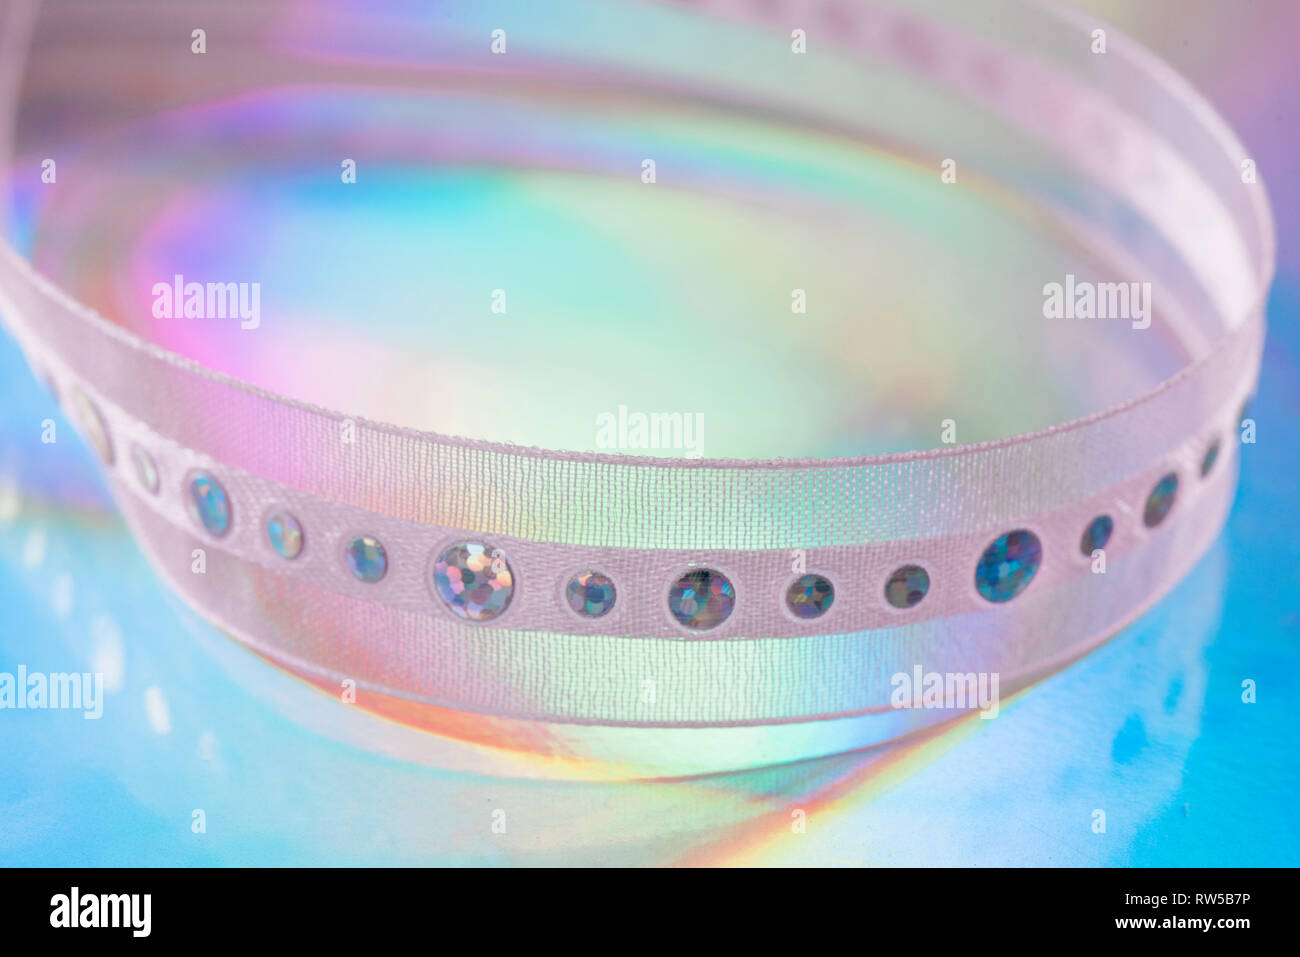 Ribbon on holographic paper - Stock Image